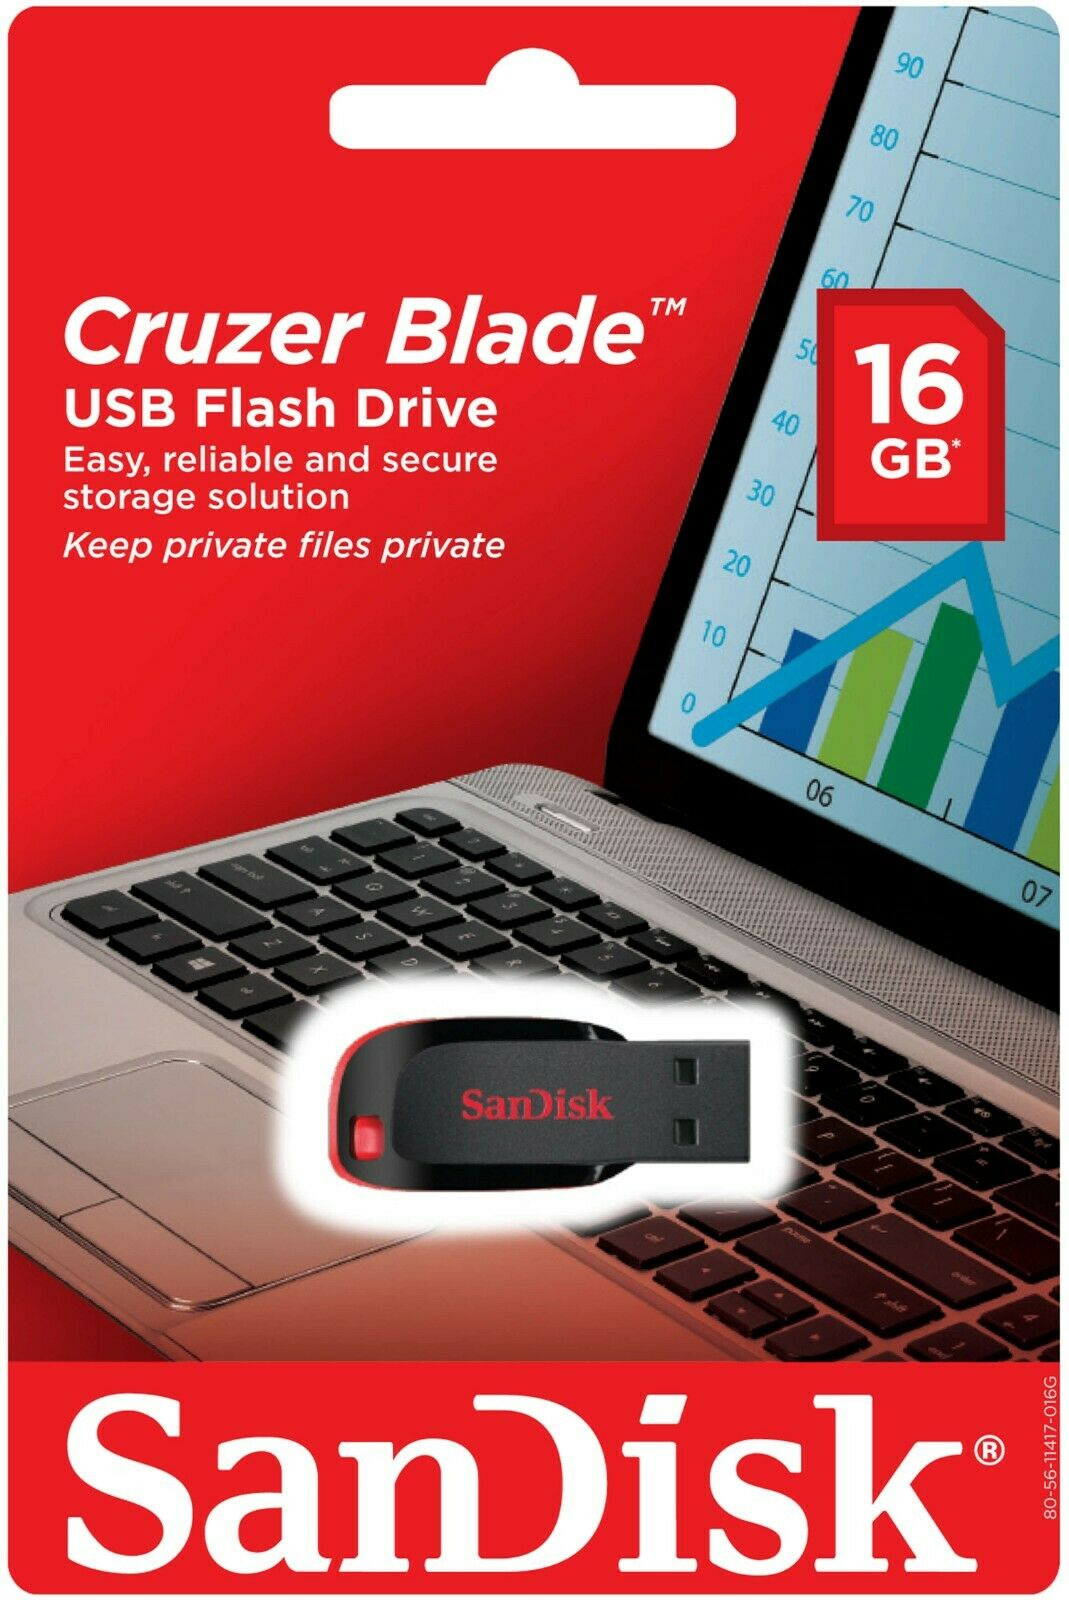 cruzer blade 16 gb usb flash drive